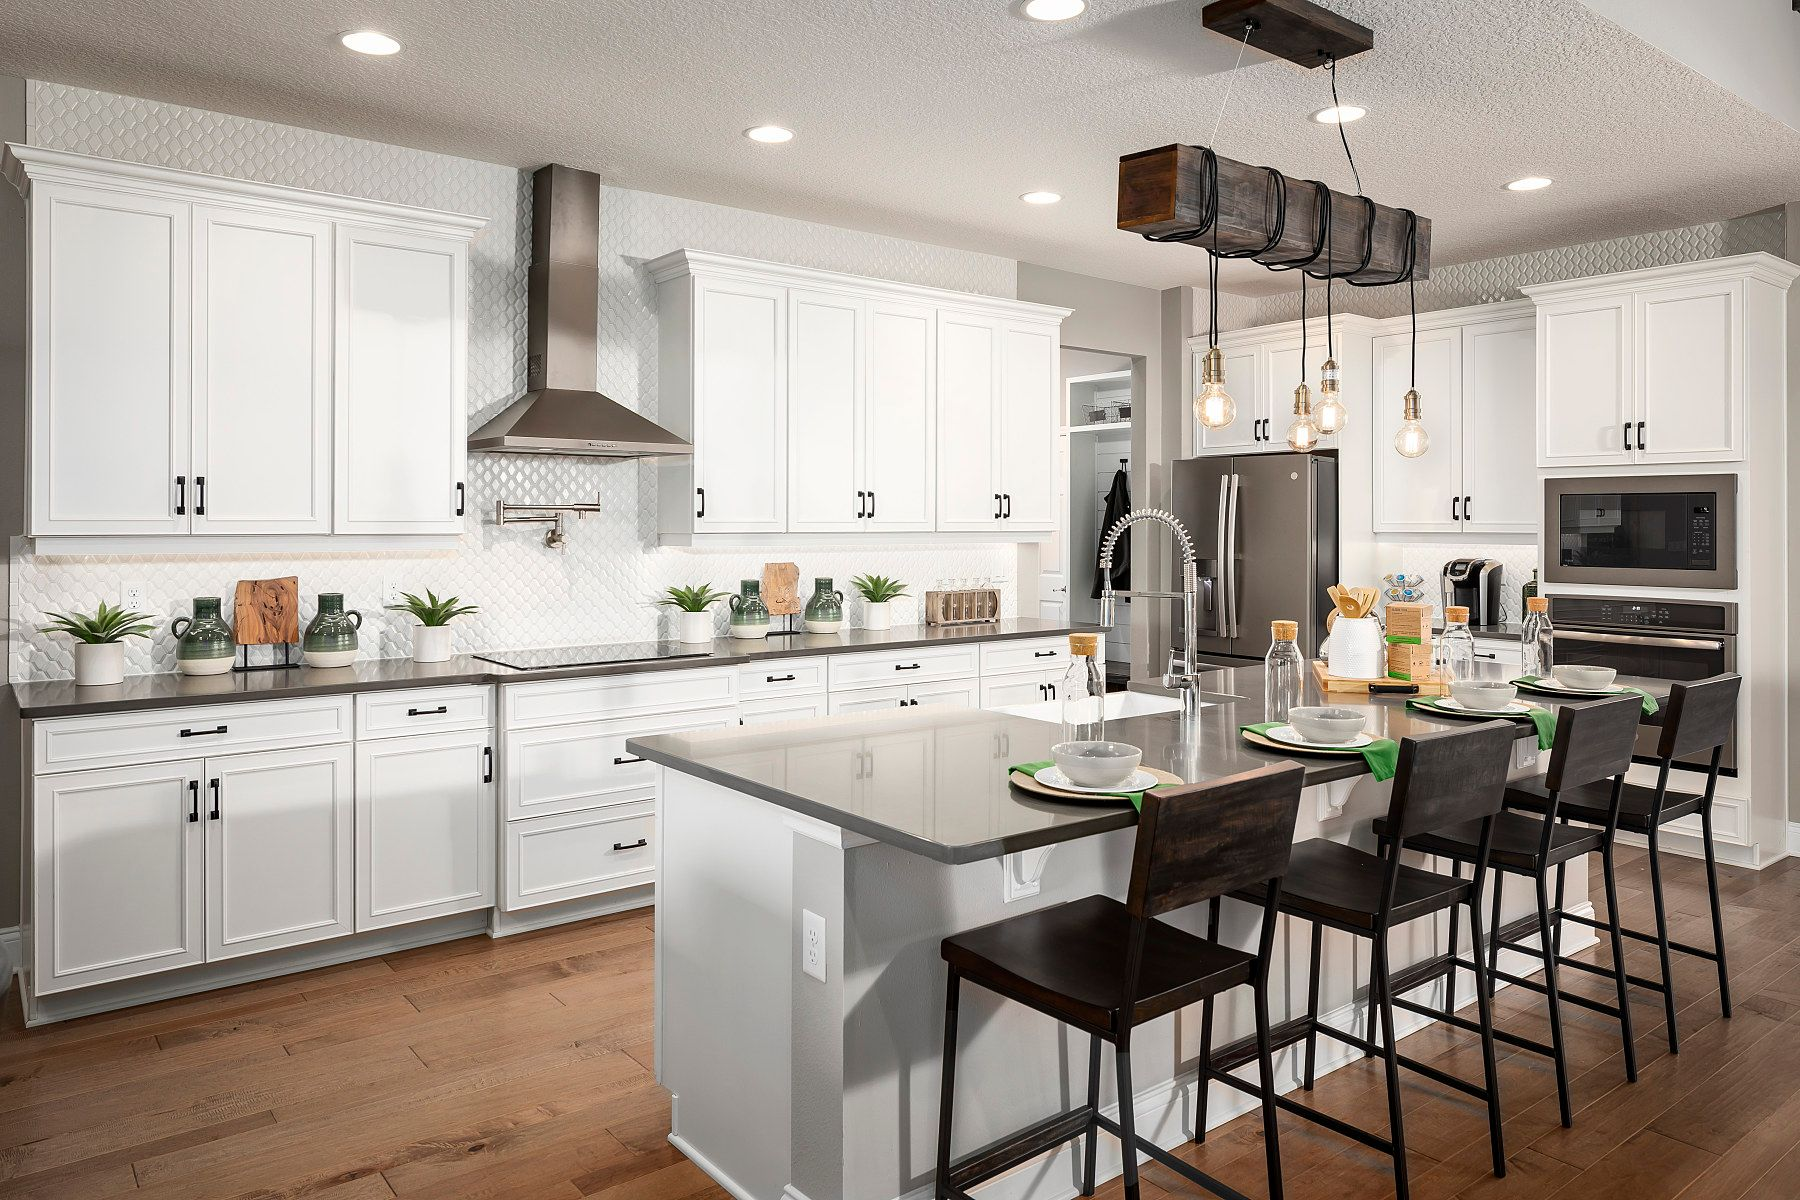 Kitchen featured in the Brookhaven Fl By M/I Homes in Orlando, FL